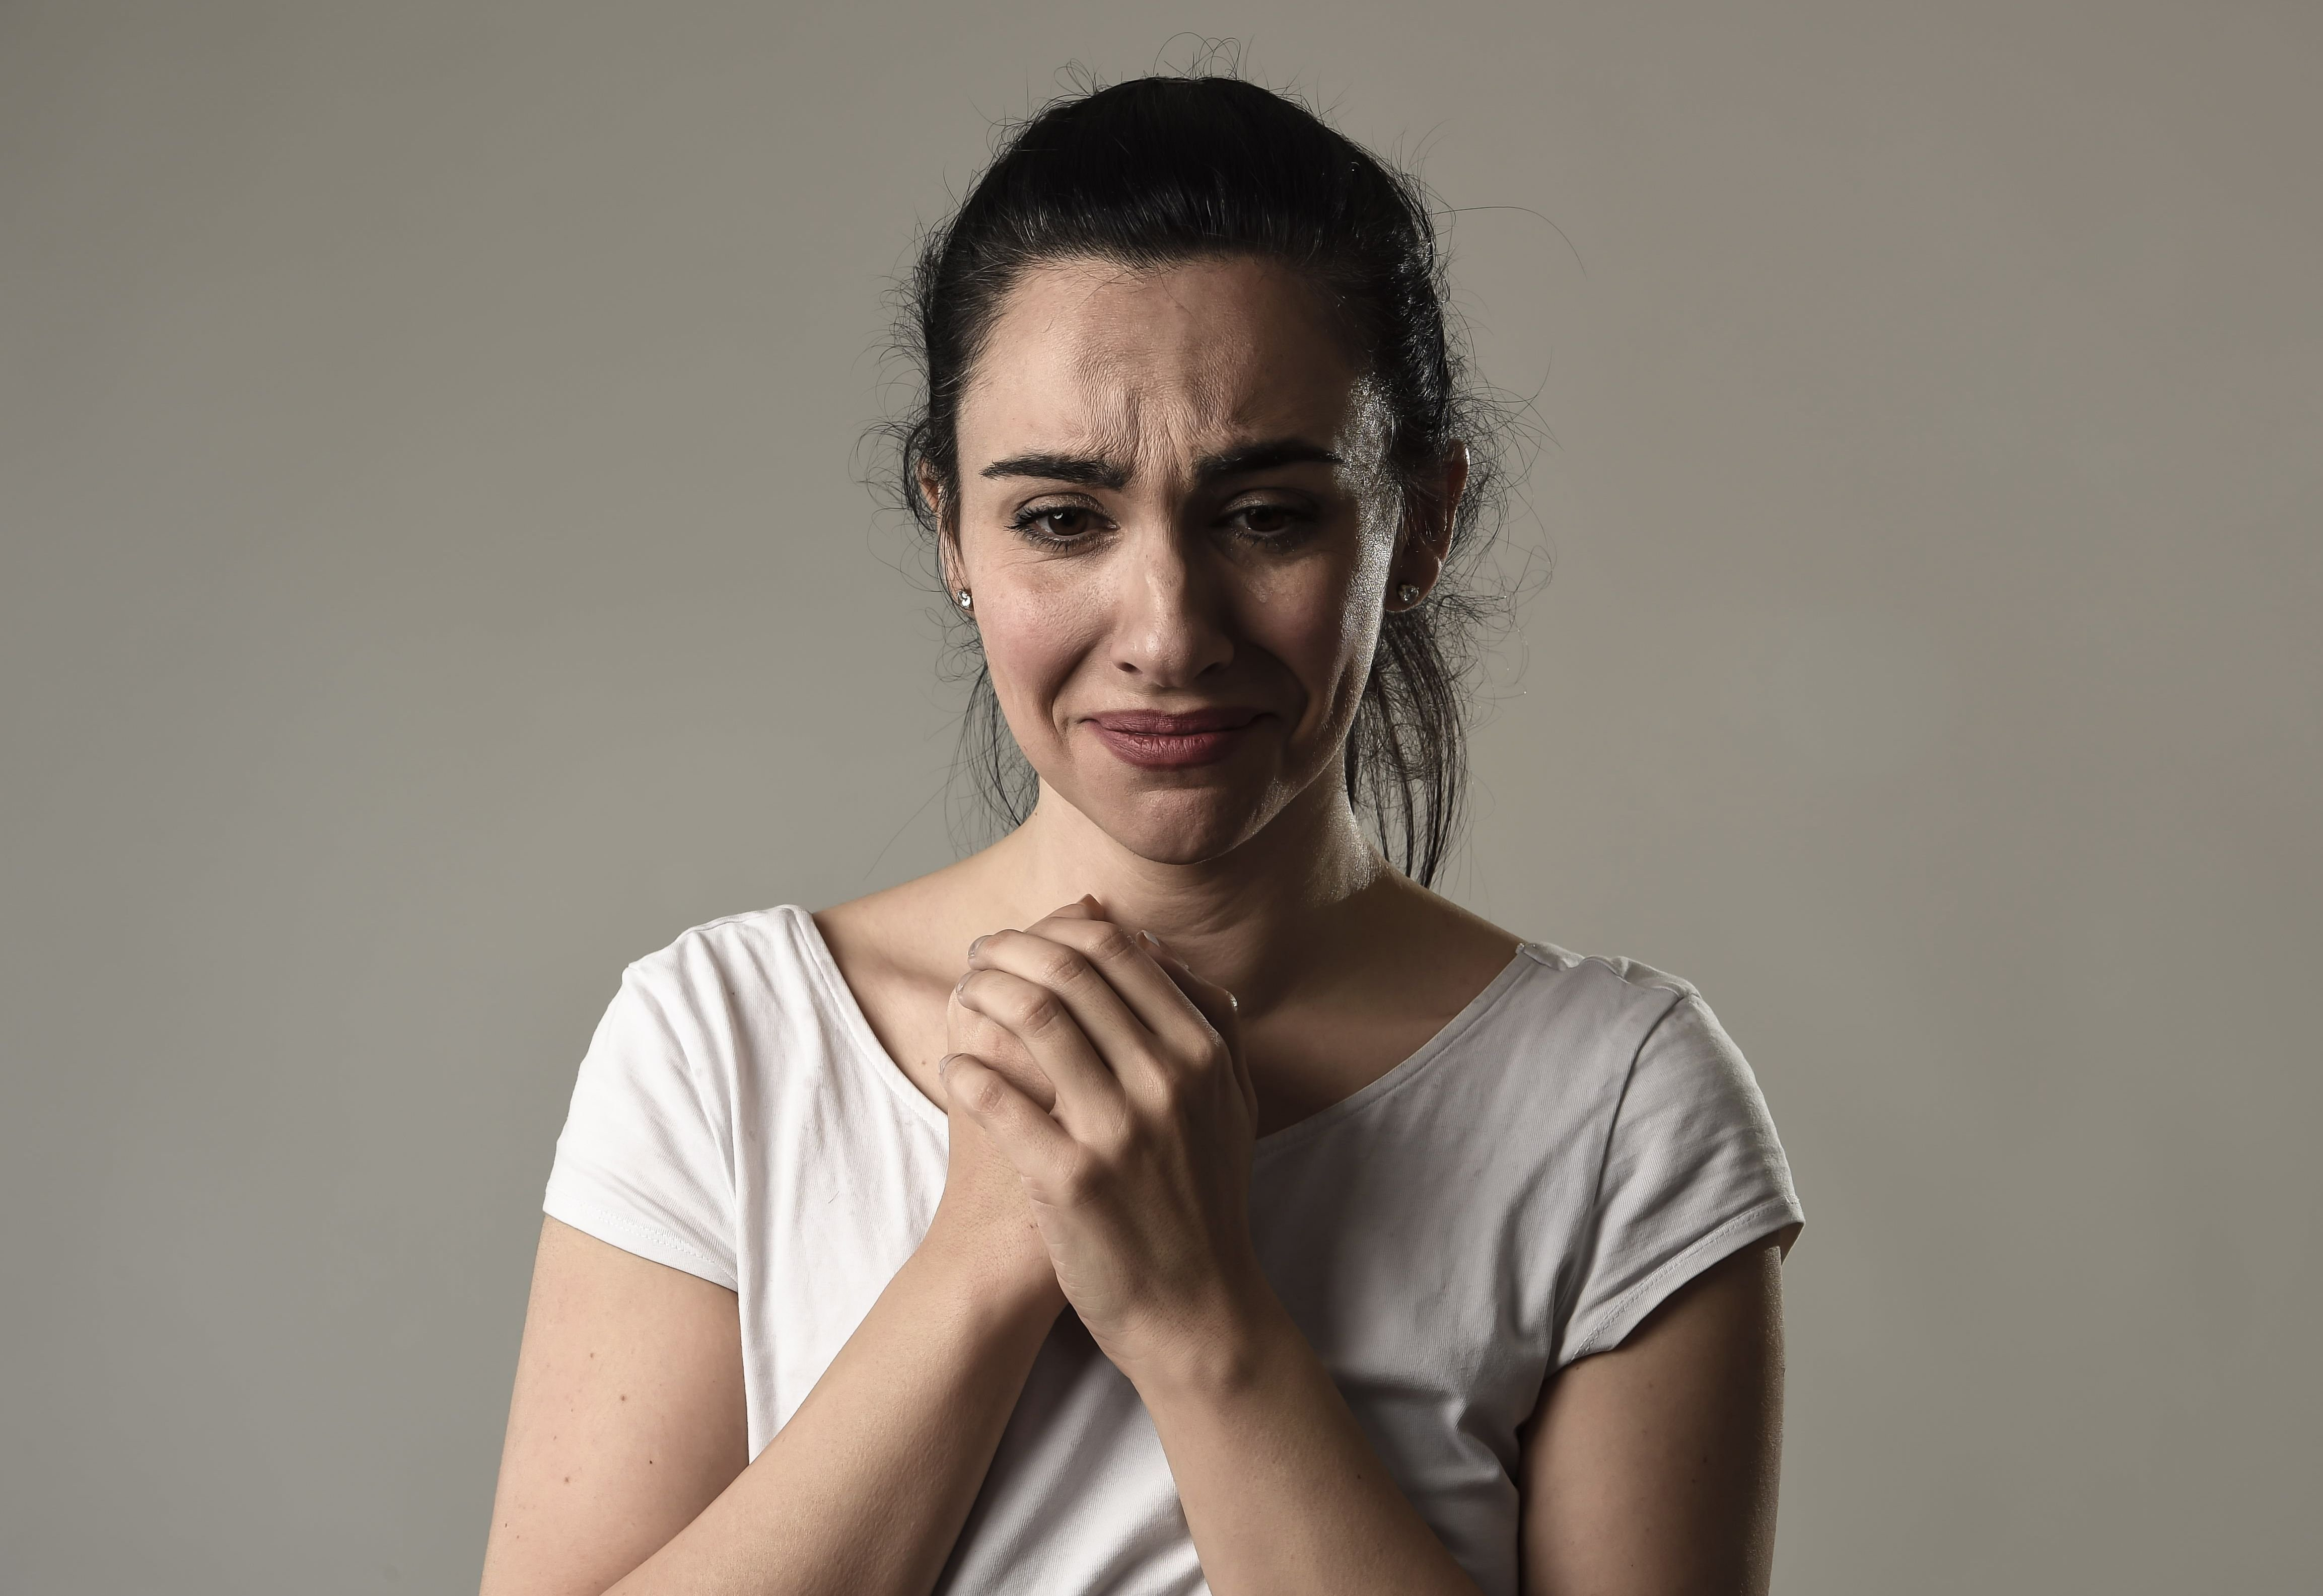 A woman clasps her hand together in tears.   Source: Shutterstock